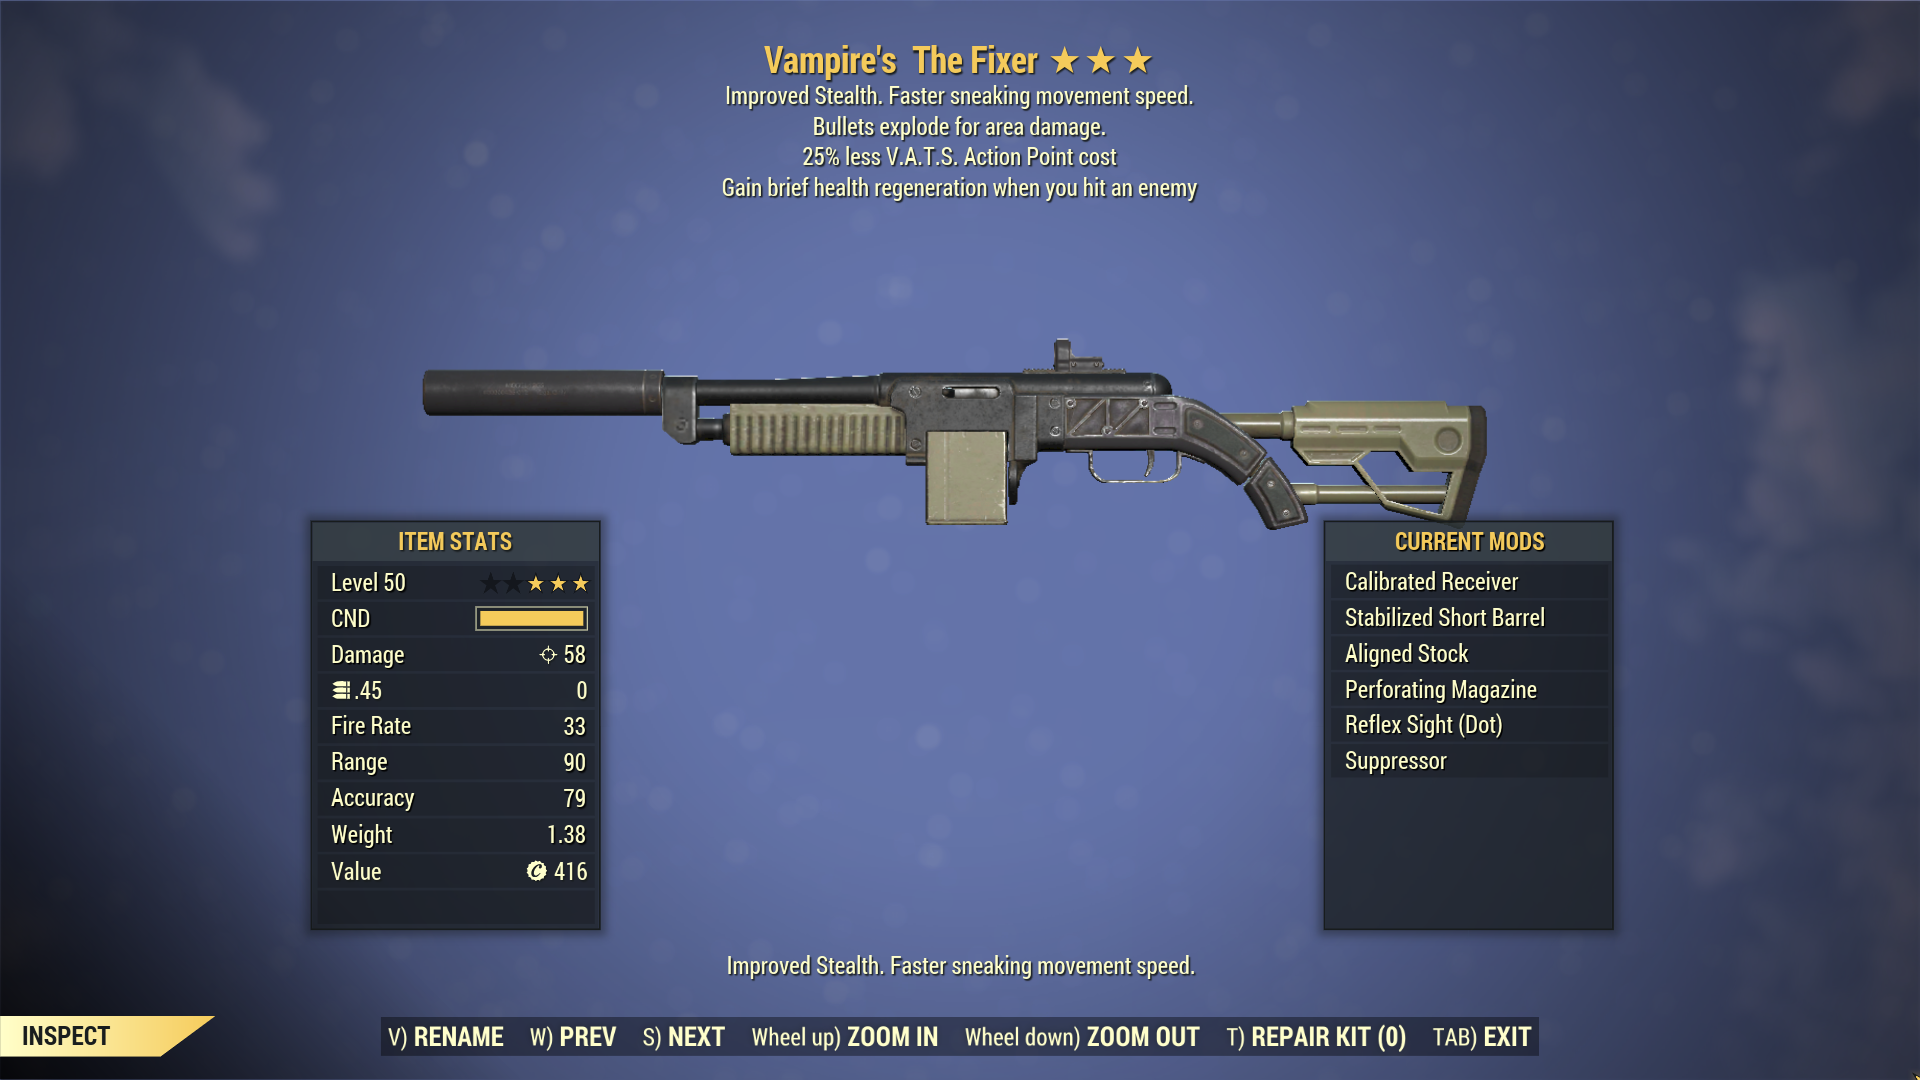 ★★★ Vampire's Explosive The Fixer [25% LESS VATS] | FAST DELIVERY |